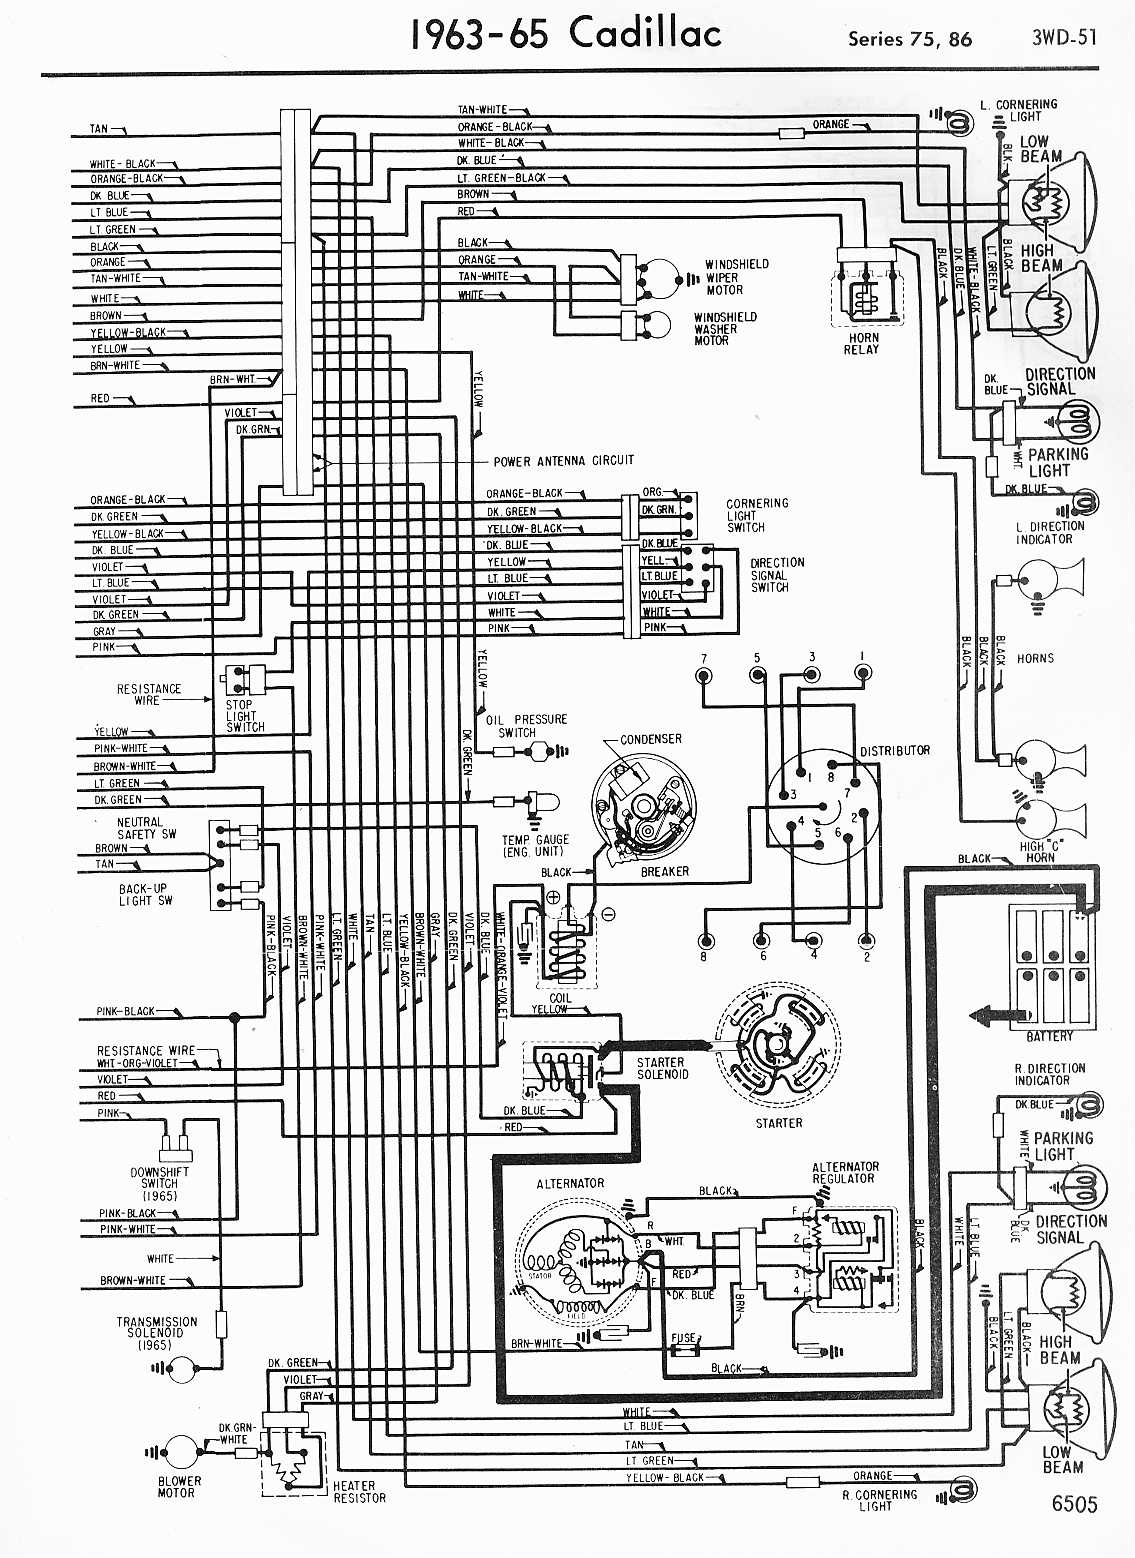 MWireCadi65_3WD 051 1968 cadillac ignition wiring diagram wiring diagram data